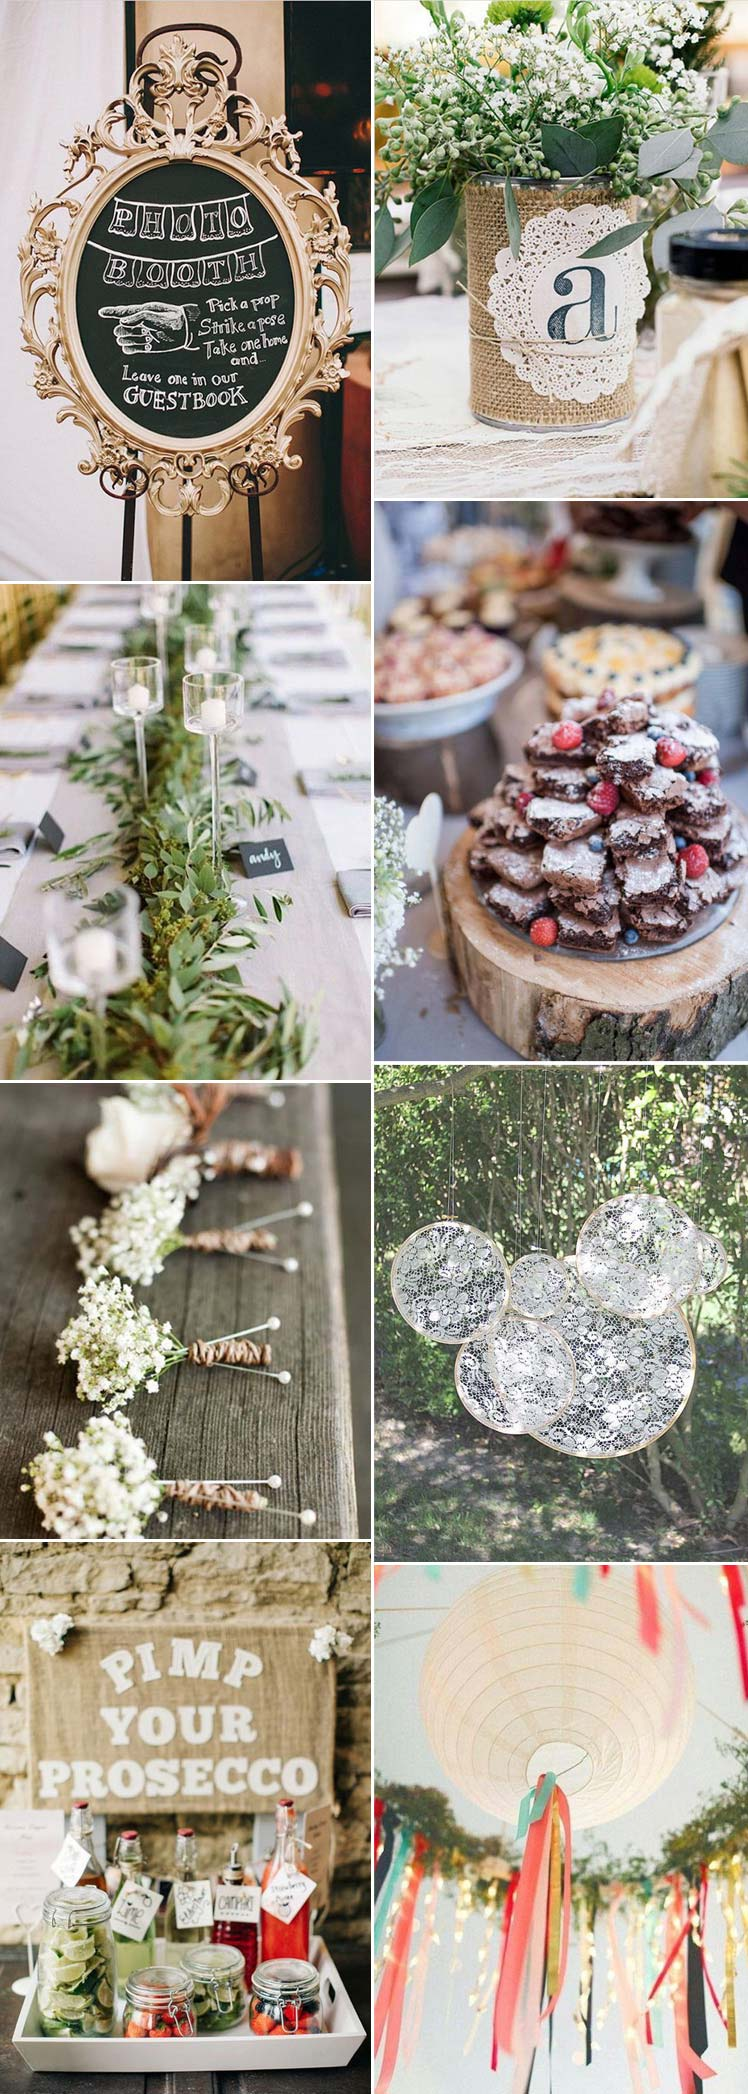 Wedding planning ideas on a limited budget